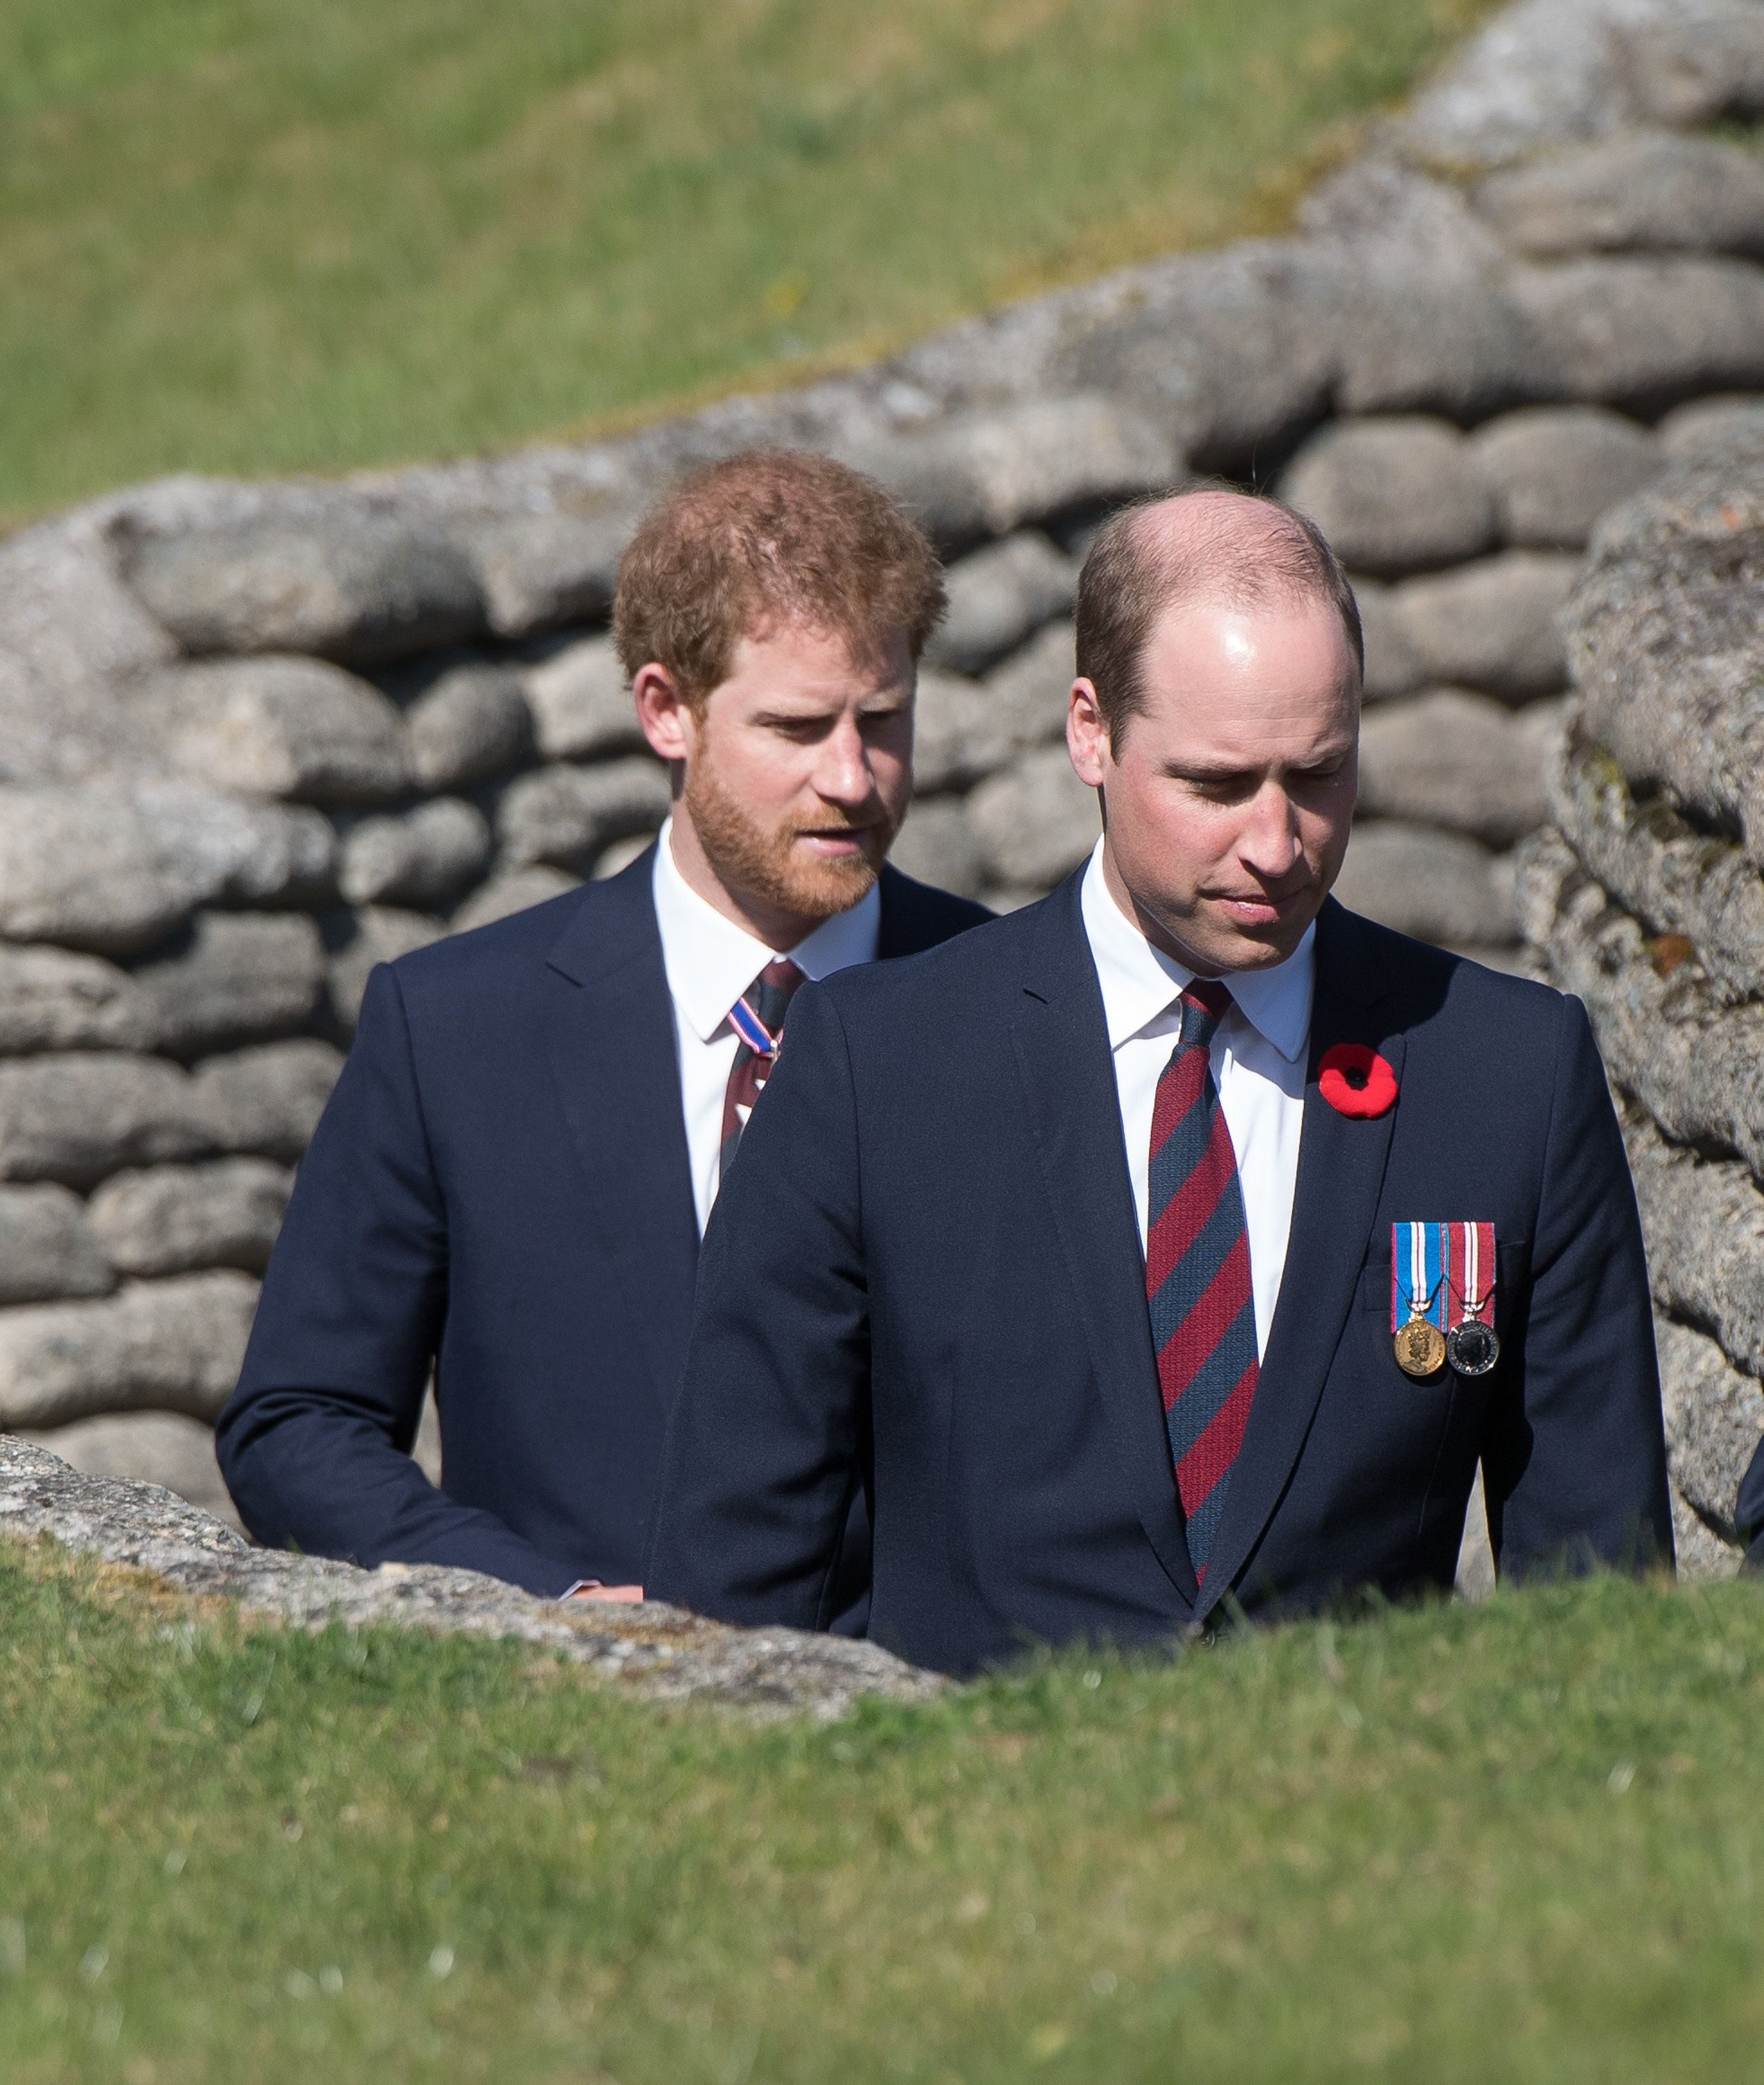 LILLE, FRANCE - APRIL 09:  Prince William, Duke of Cambridge and Prince Harry walk through a trench during the commemorations for the 100th anniversary of the battle of Vimy Ridge on April 9, 2017 in Lille, France.  (Photo by Samir Hussein/WireImage)